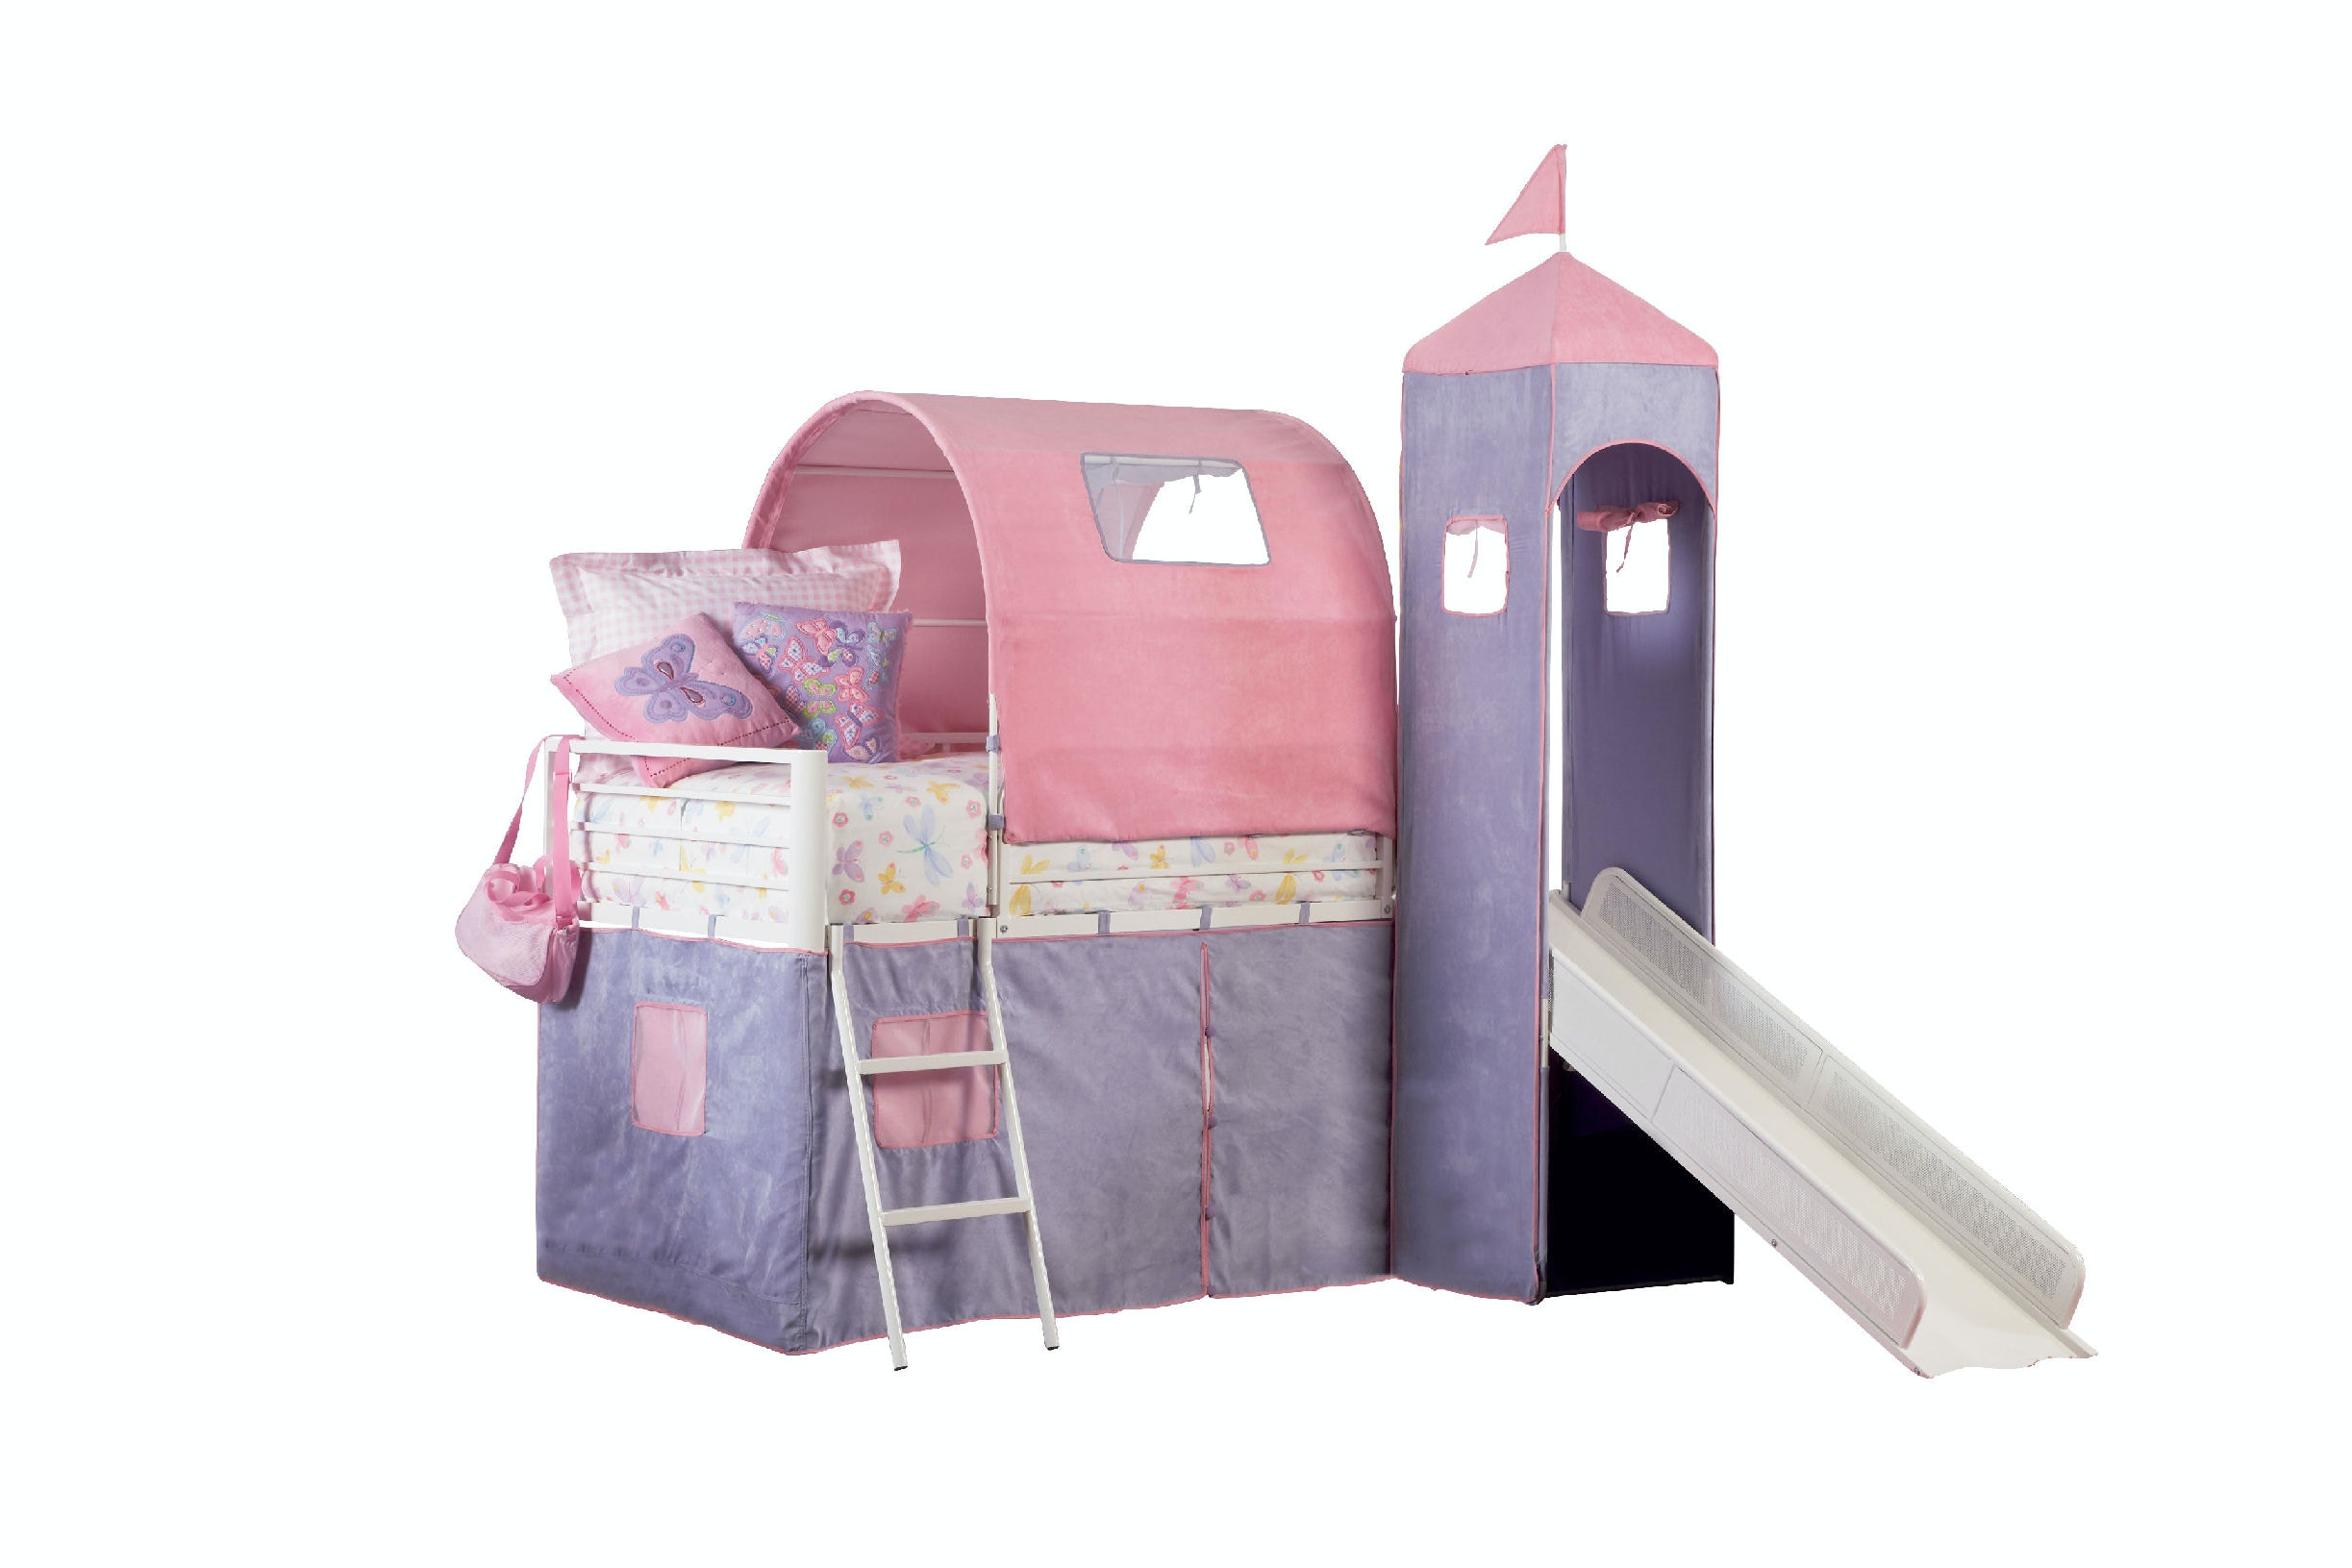 ... Powell Furniture Princess Castle Twin Size Tent Bunk Bed With Slide 374-069  sc 1 st  Osmond Designs & Youth Princess Castle Twin Size Tent Bunk Bed With Slide 374-069 ...